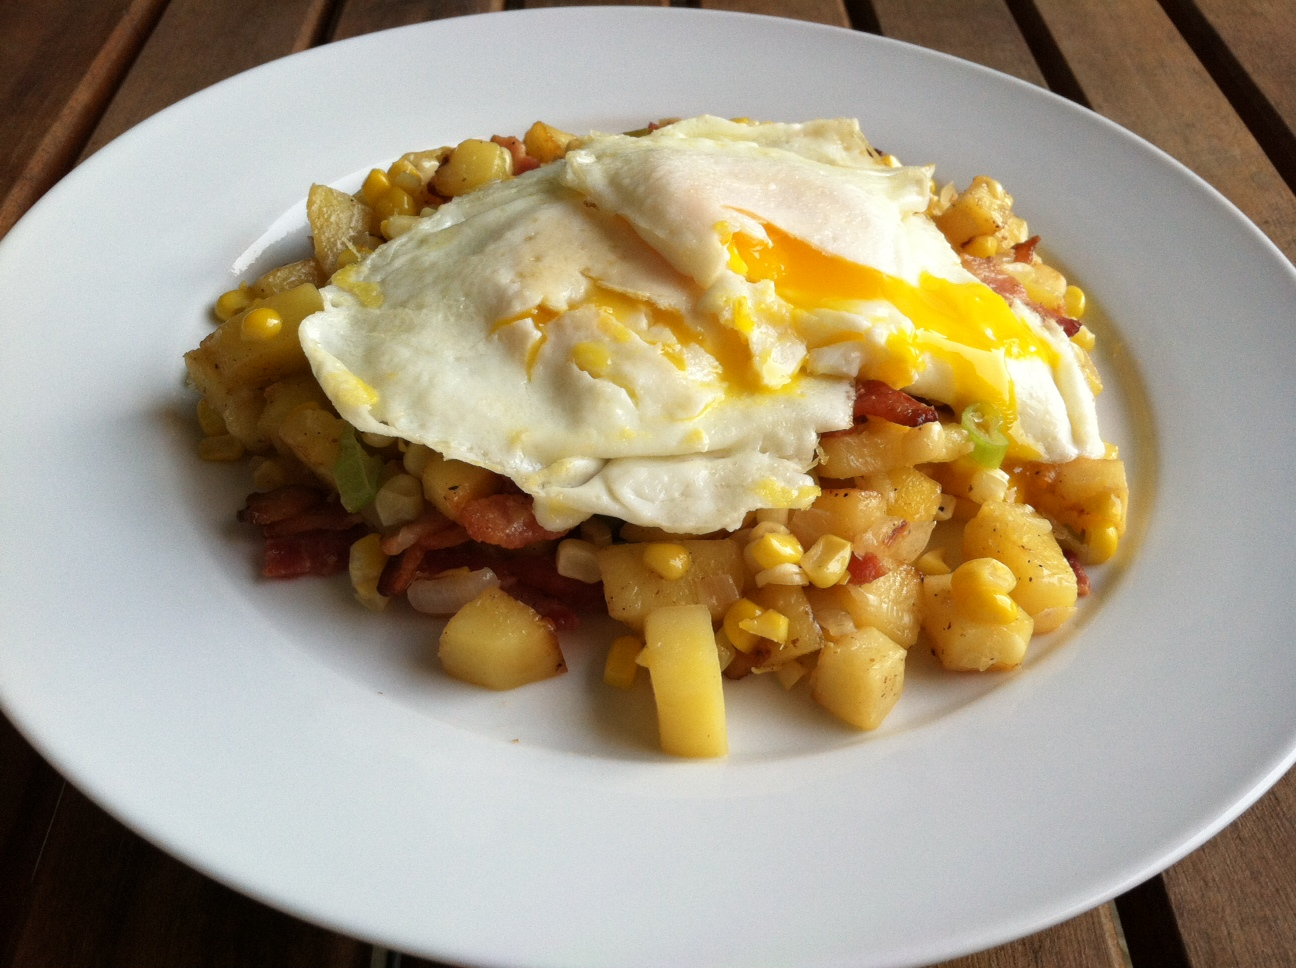 Taste of Home Cooking: Bacon Corn Hash with Fried Eggs